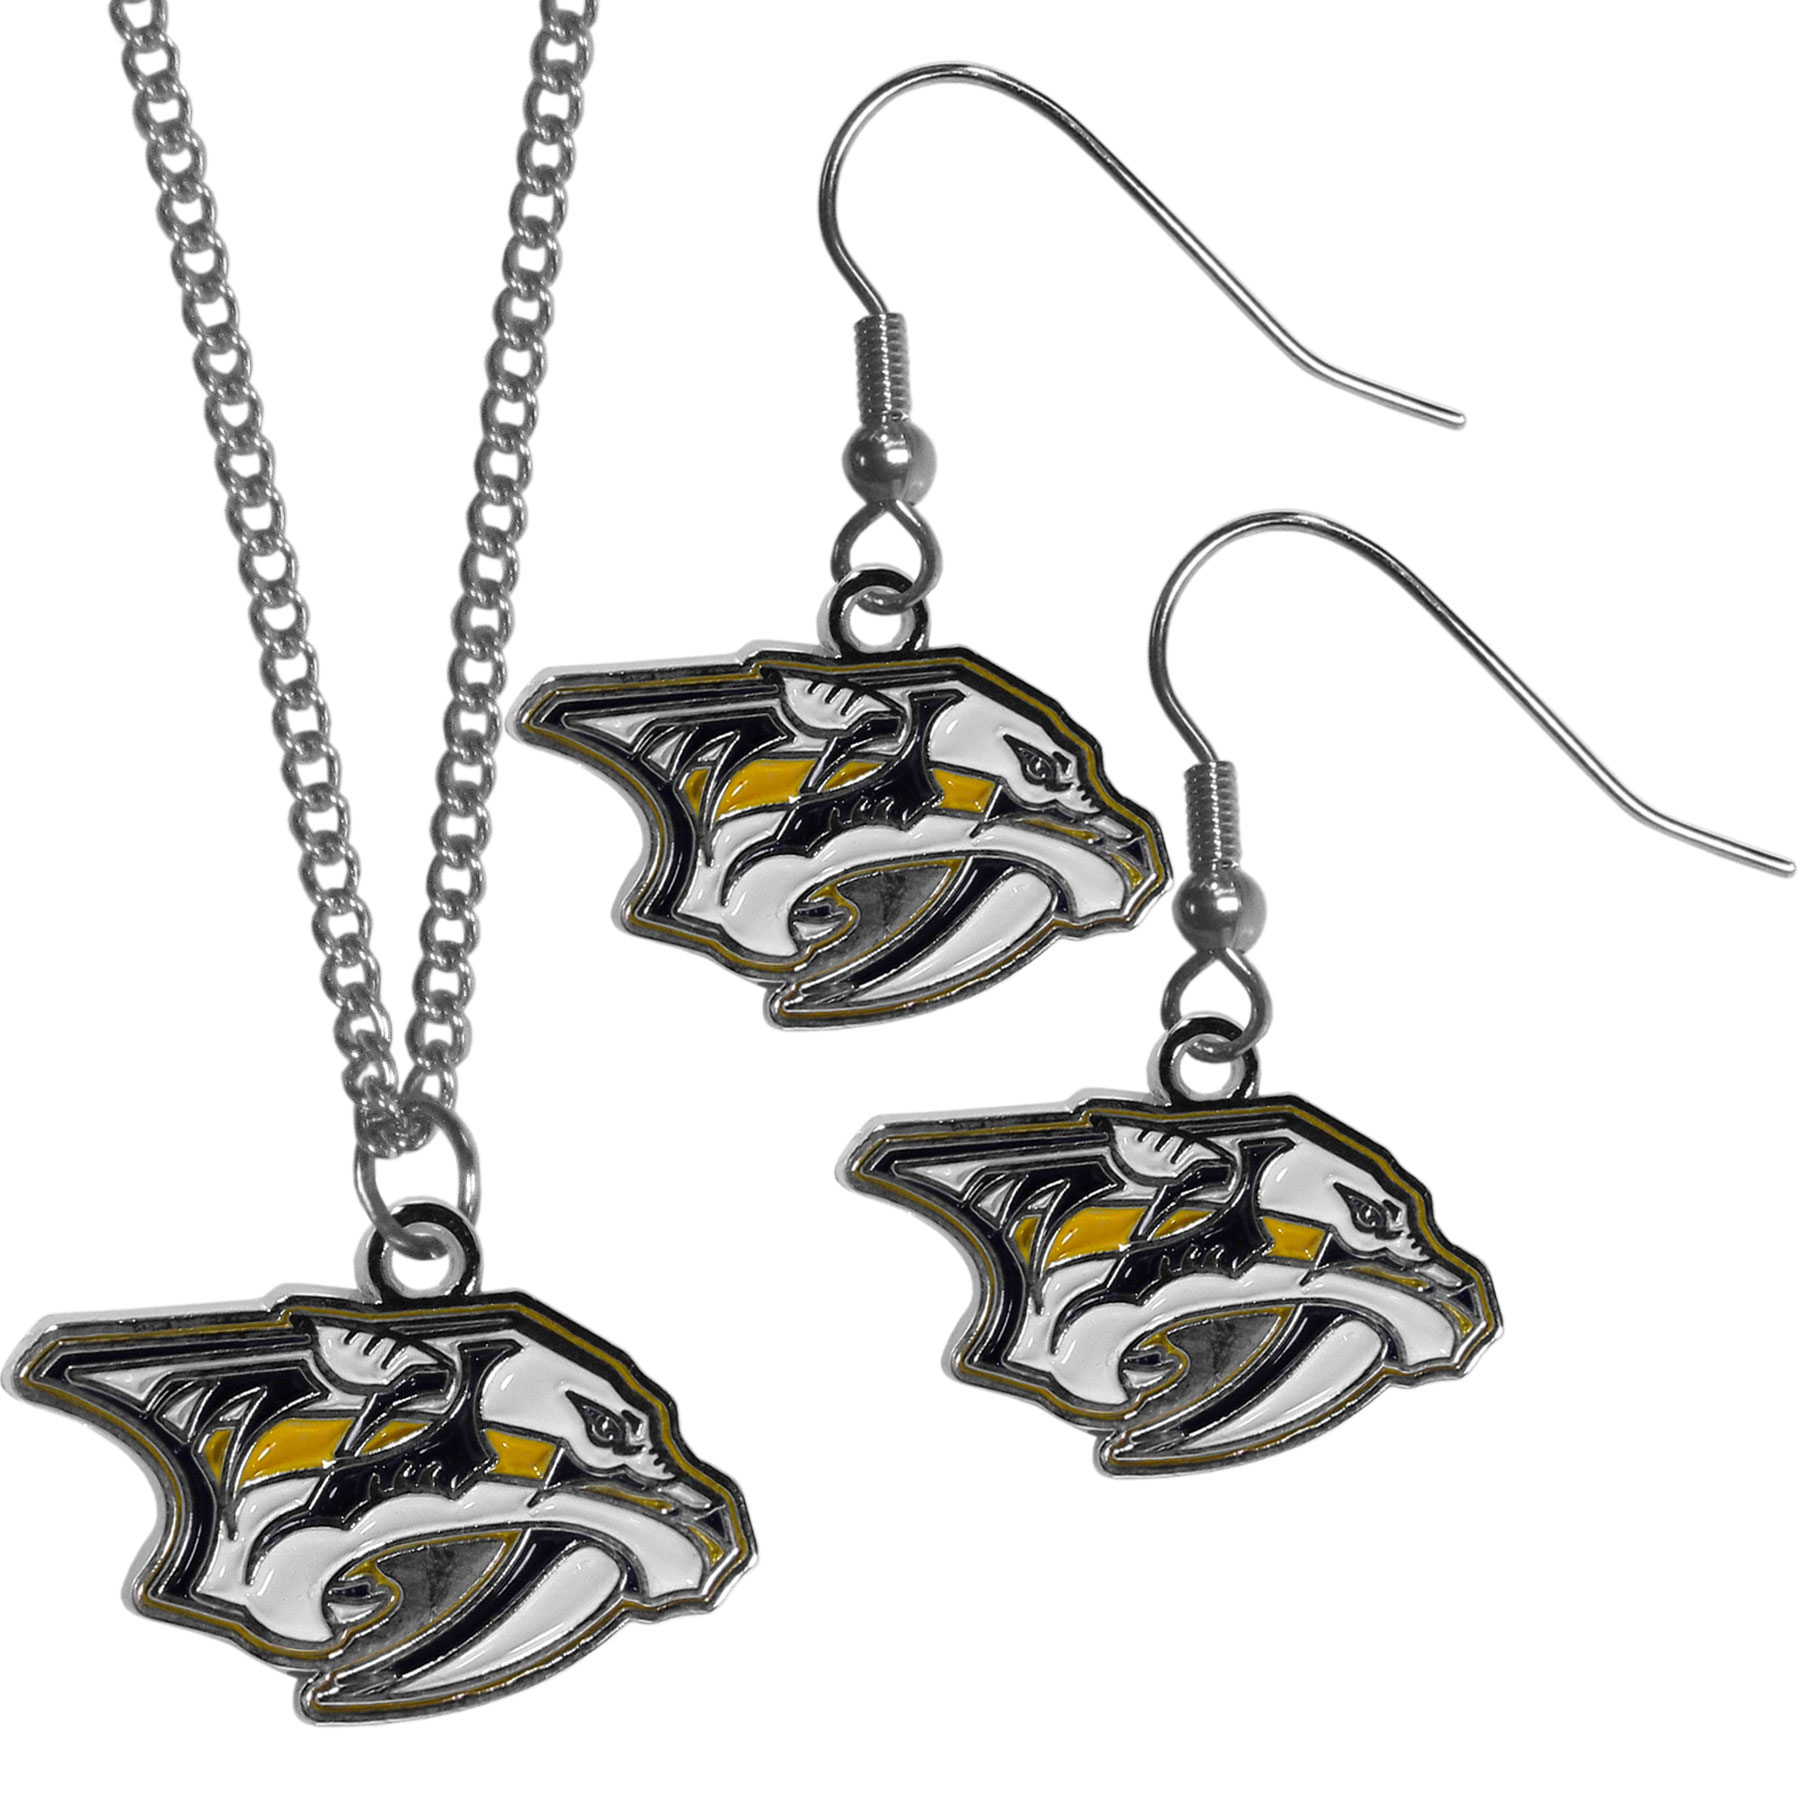 Nashville Predators® Dangle Earrings and Chain Necklace Set - This classic jewelry set contains are most popular Nashville Predators® dangle earrings and 22 inch chain necklace. The trendy, dangle earrings are lightweight and feature a fully cast metal team charm with enameled team colors. The matching necklace completes this fashion forward combo and is a spirited set that is perfect for game day but nice enough for everyday.